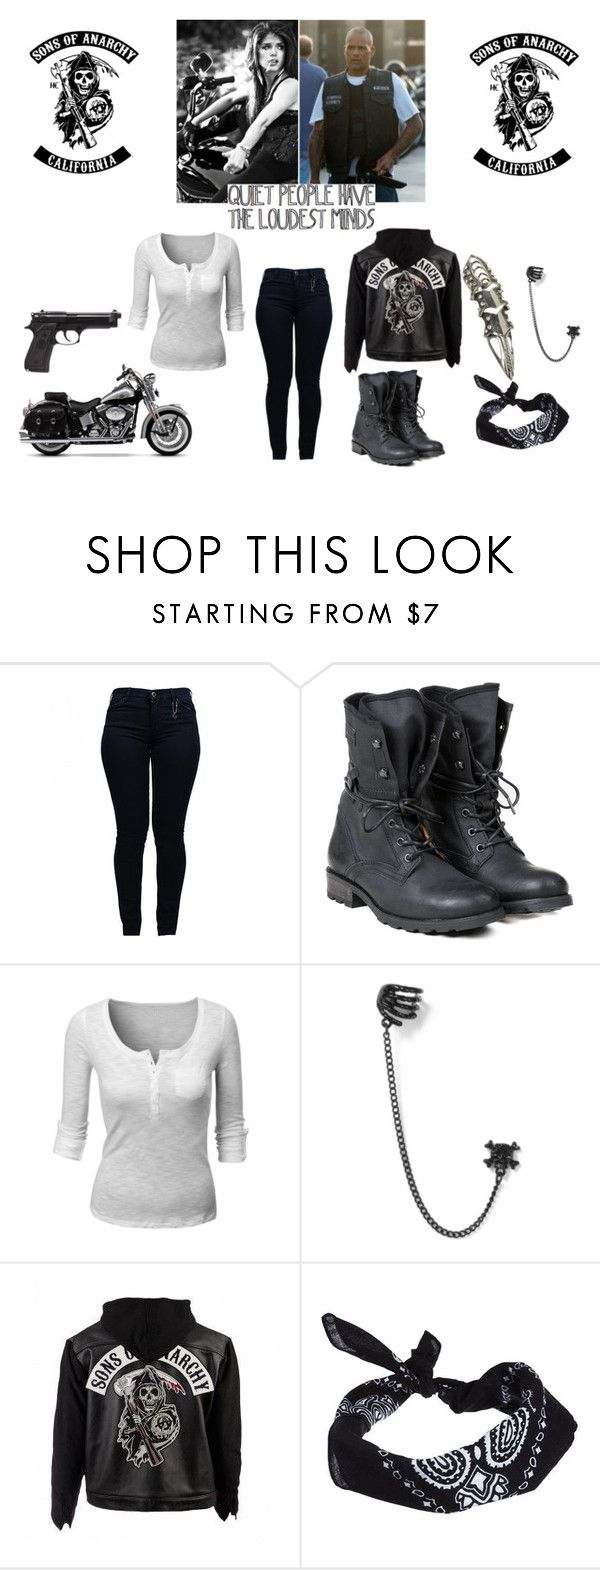 """The Female Son - Sons Of Anarchy - Happy Lowman"" by aliiceroseee ❤ liked on Polyvore featuring Armani Jeans, PLDM by Palladium, Doublju, SOA, ASOS and Wet Seal"